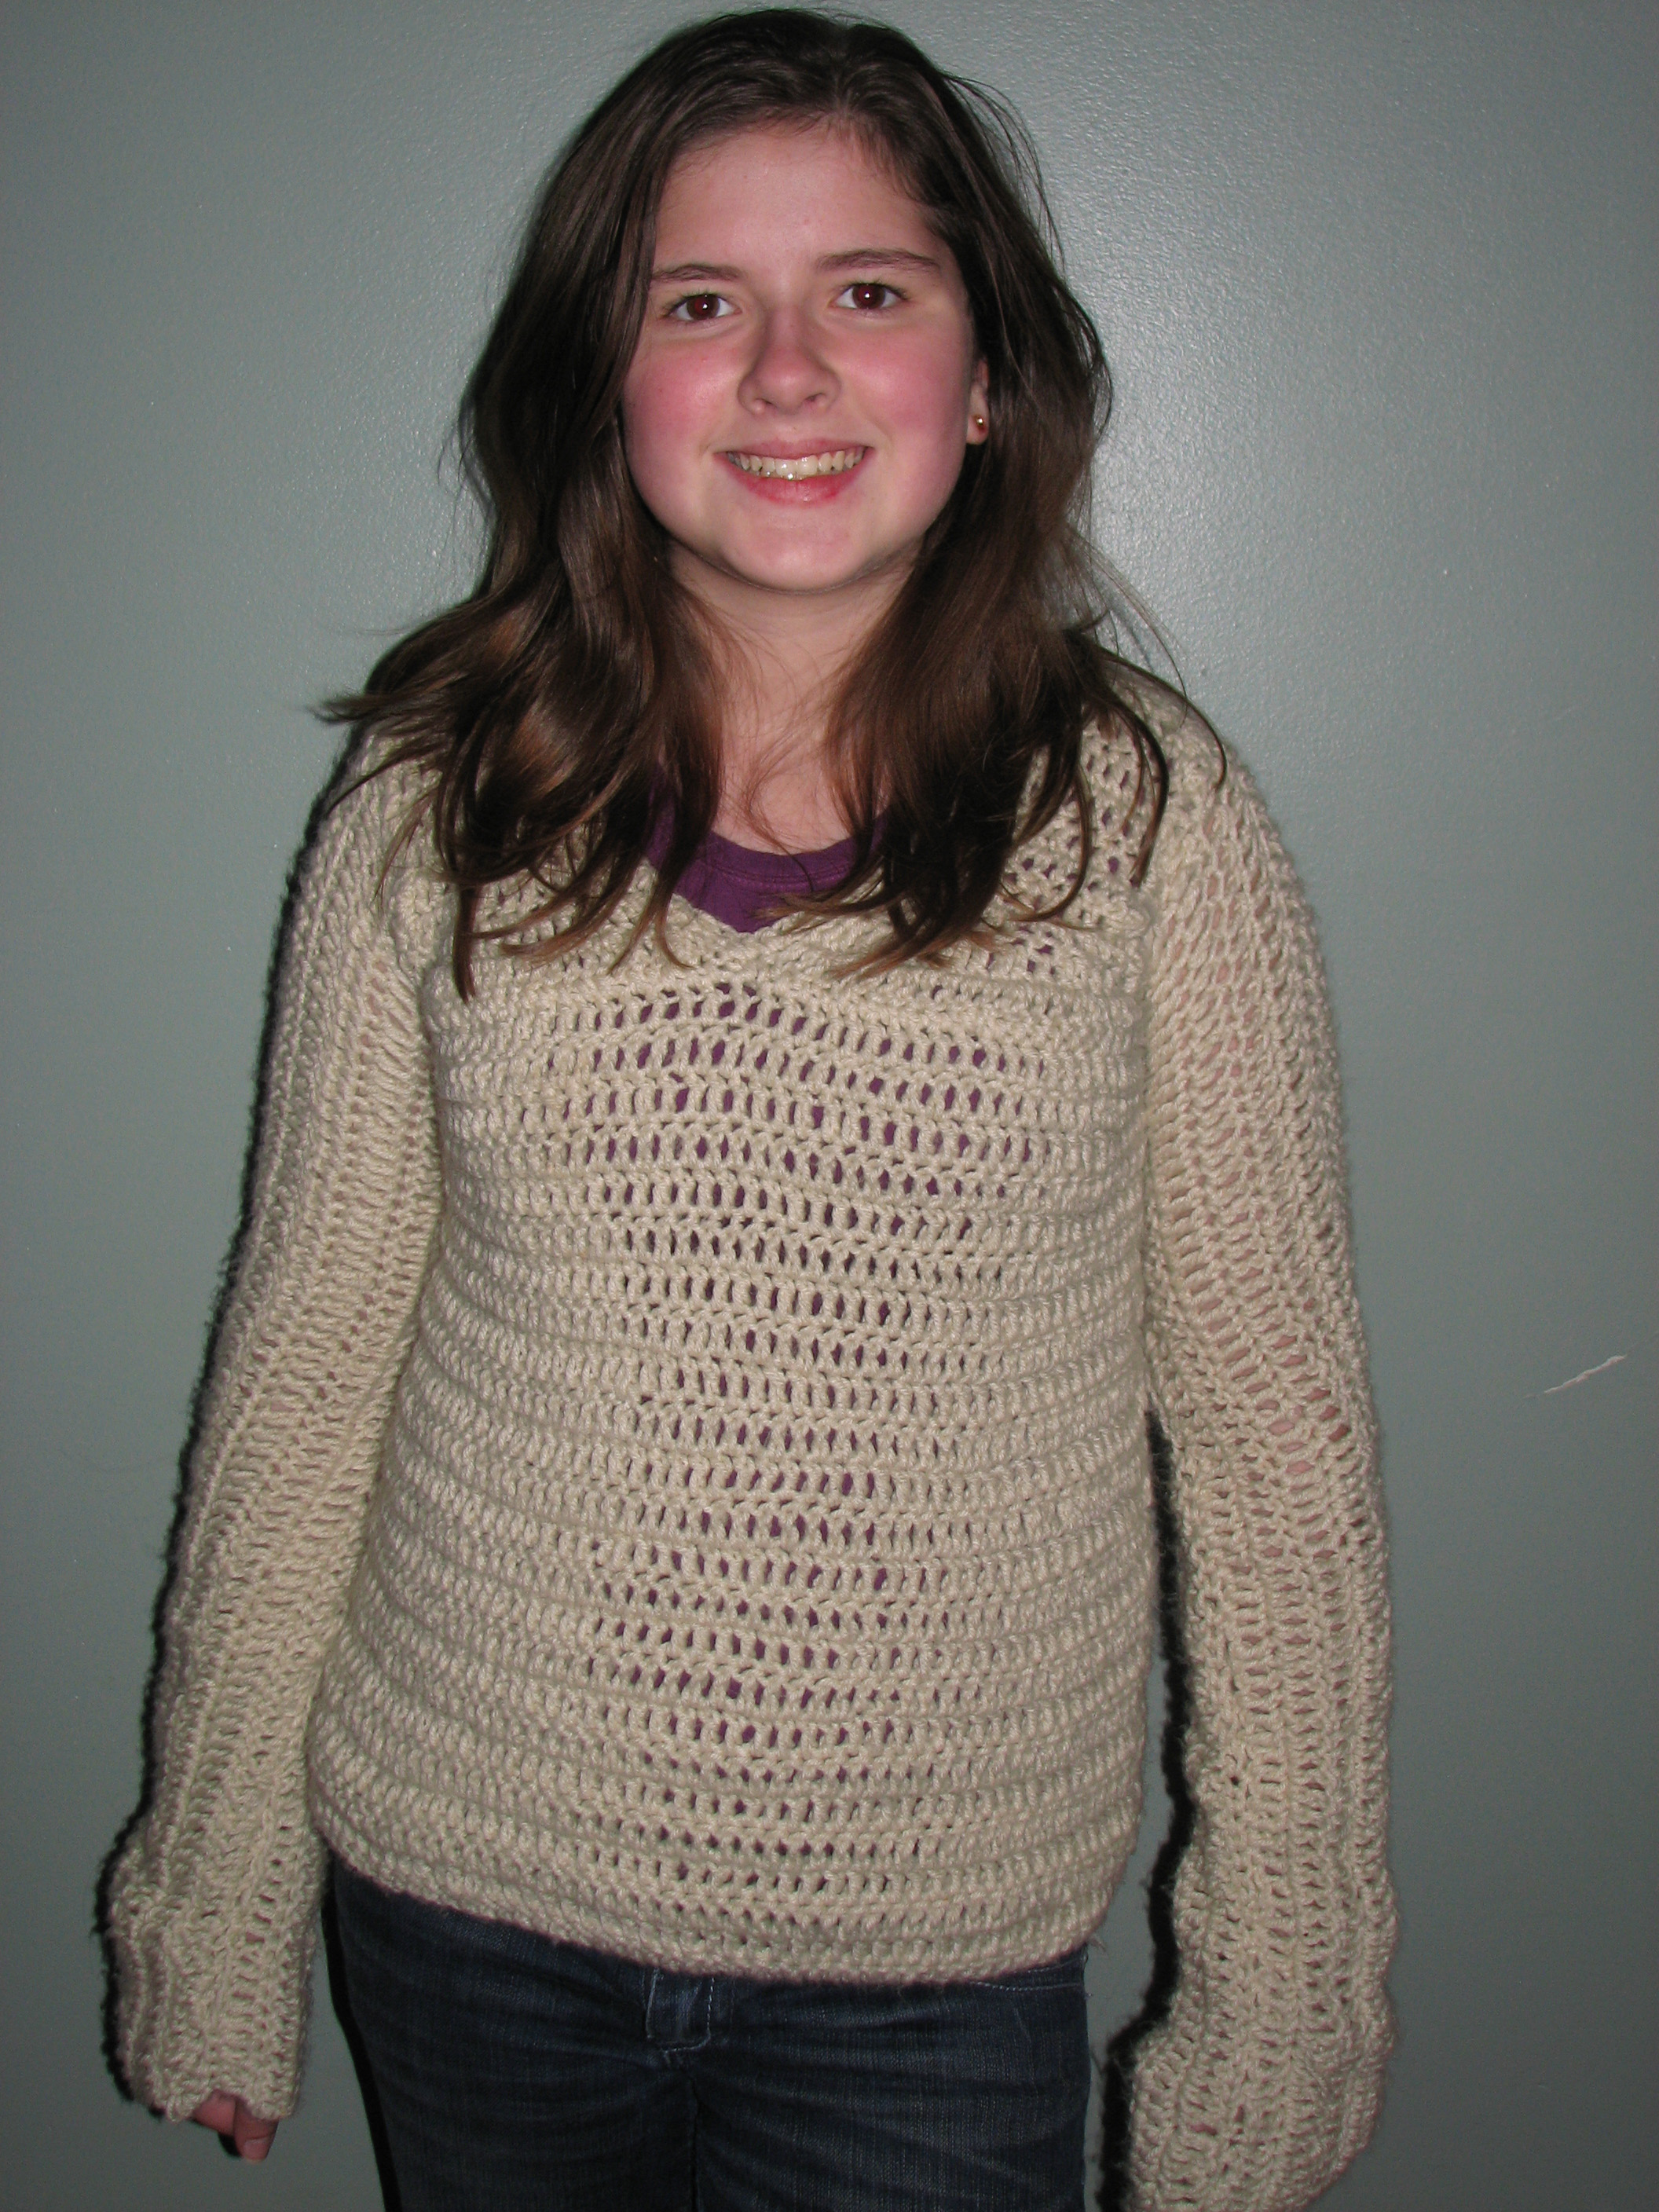 Crocheting A Sweater : Crochet Spot ? Blog Archive ? Crochet Pattern: Allyson?s Sweater ...